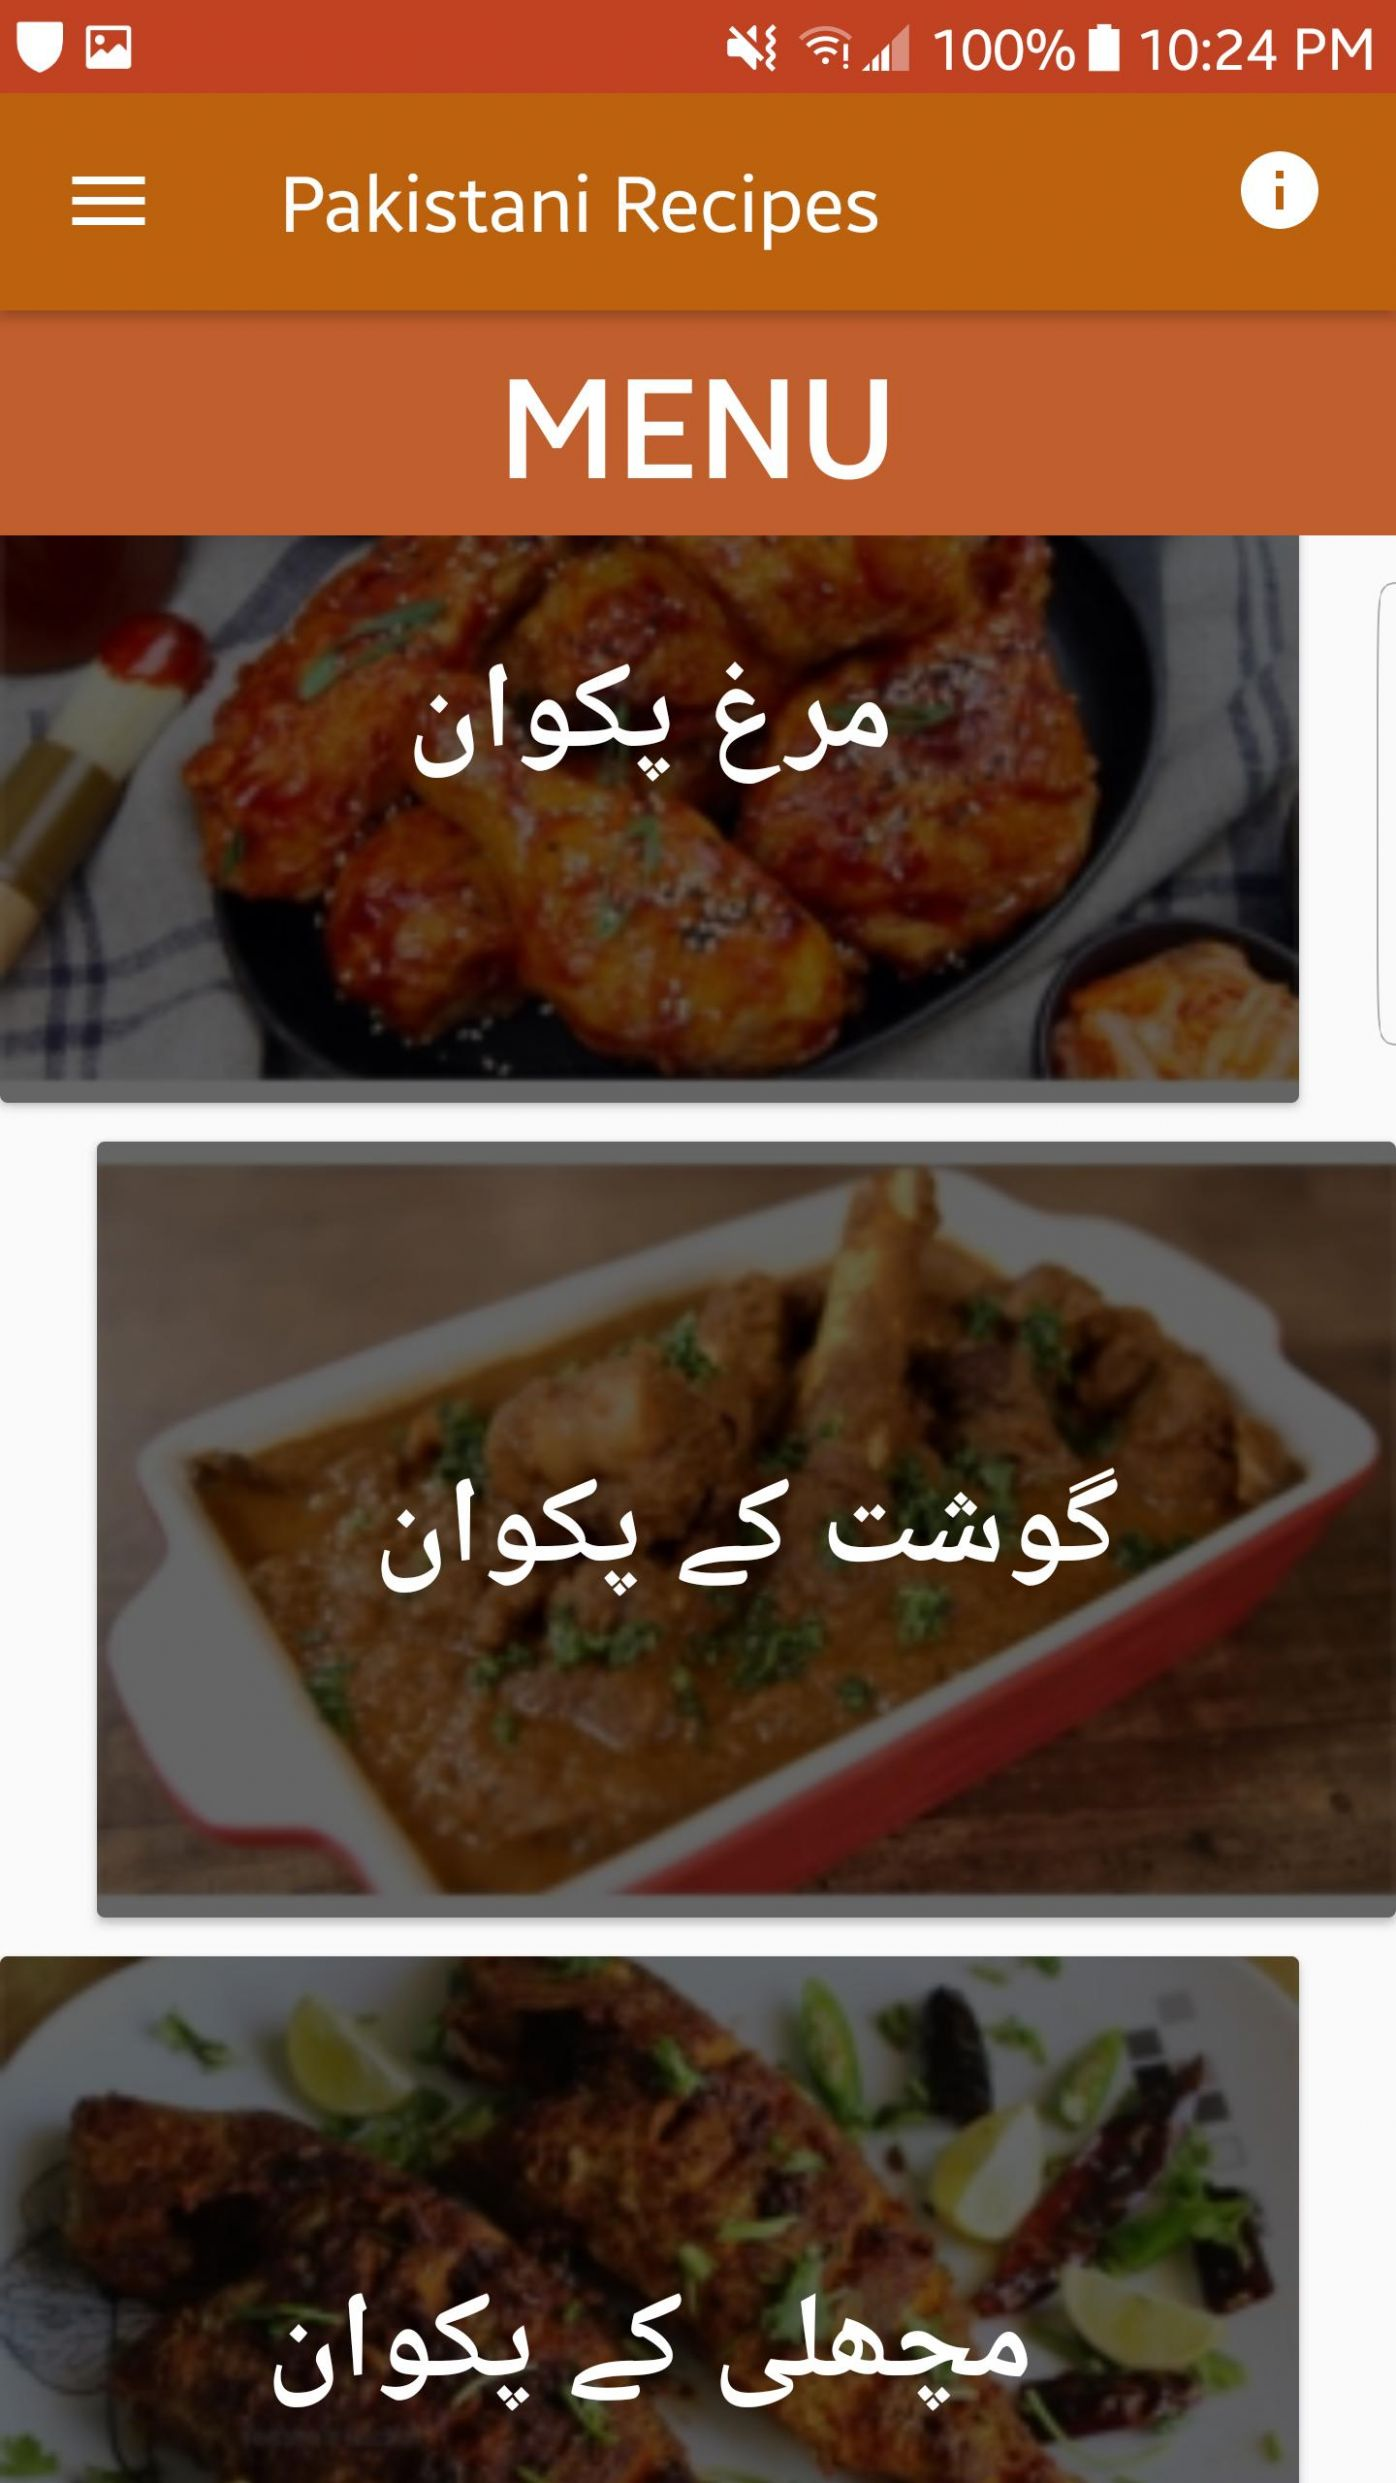 Pakistani Food Recipes in Urdu - Offline for Android - APK Download